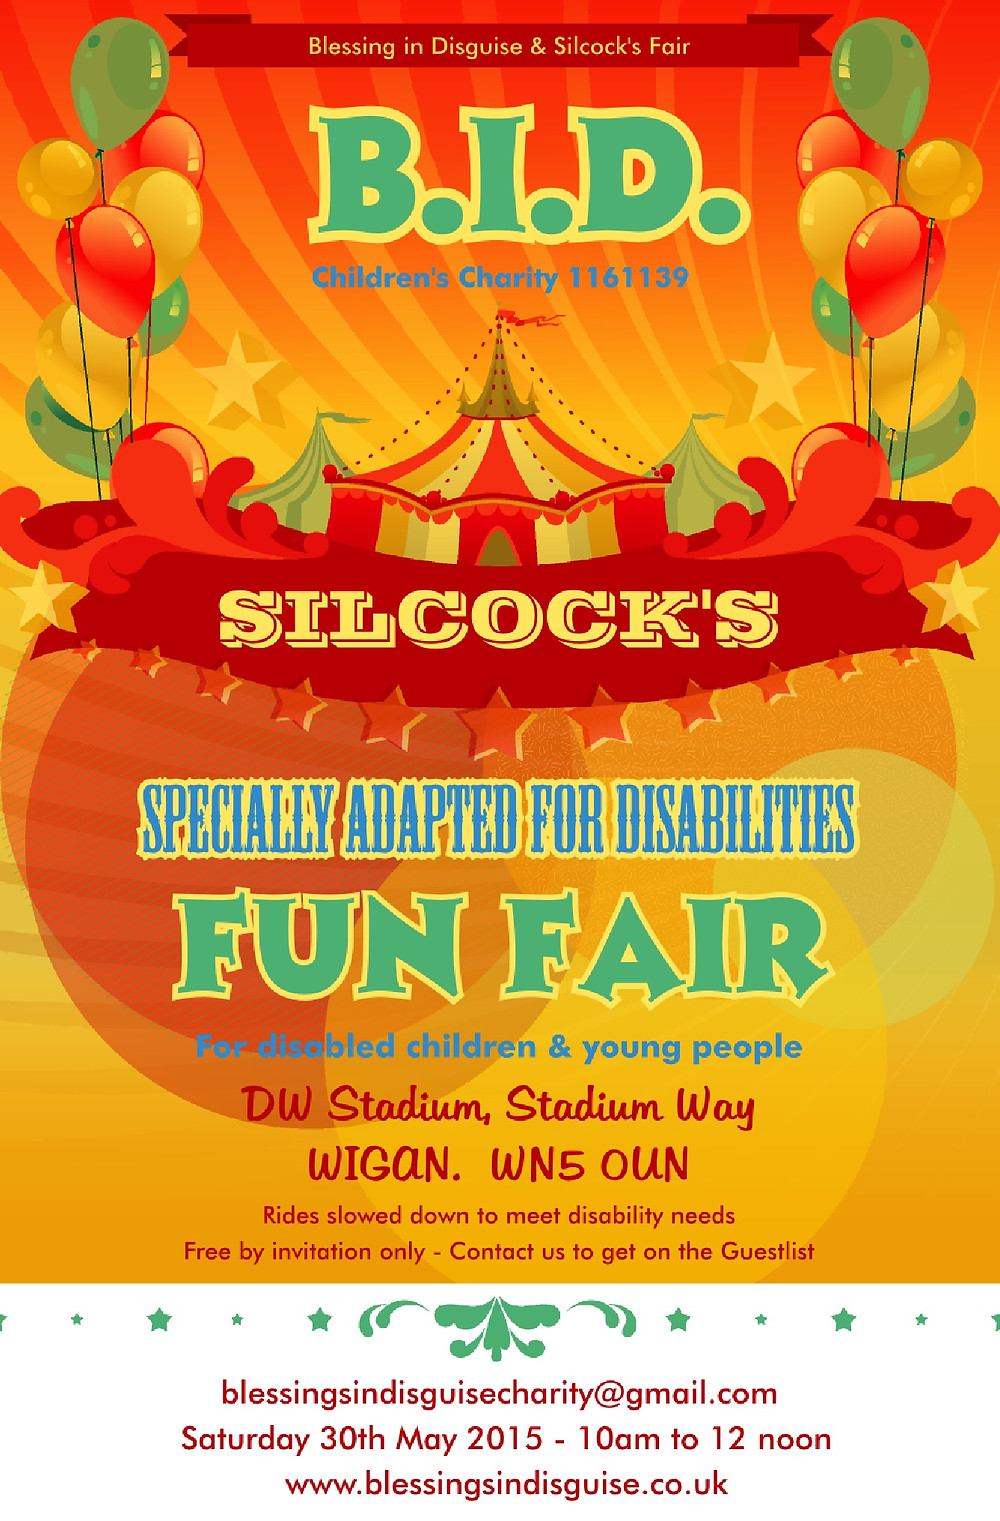 201505-30 BID Silcock Fair Flyer 1pp.jpg